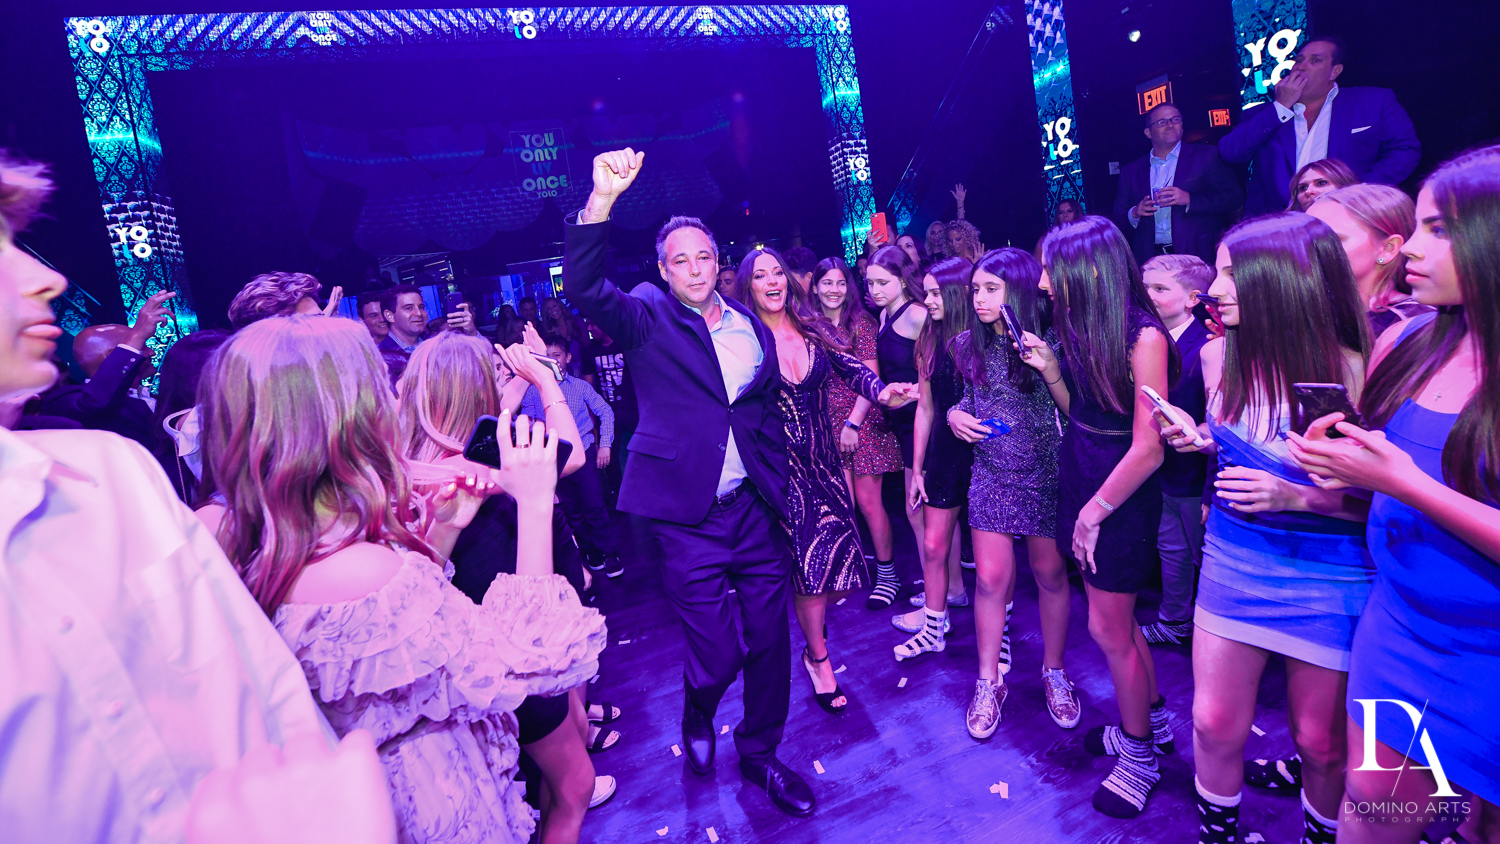 parent party entrance at Nightclub Bat Mitzvah at LIV in Fontainebleau Miami by Domino Arts Photography